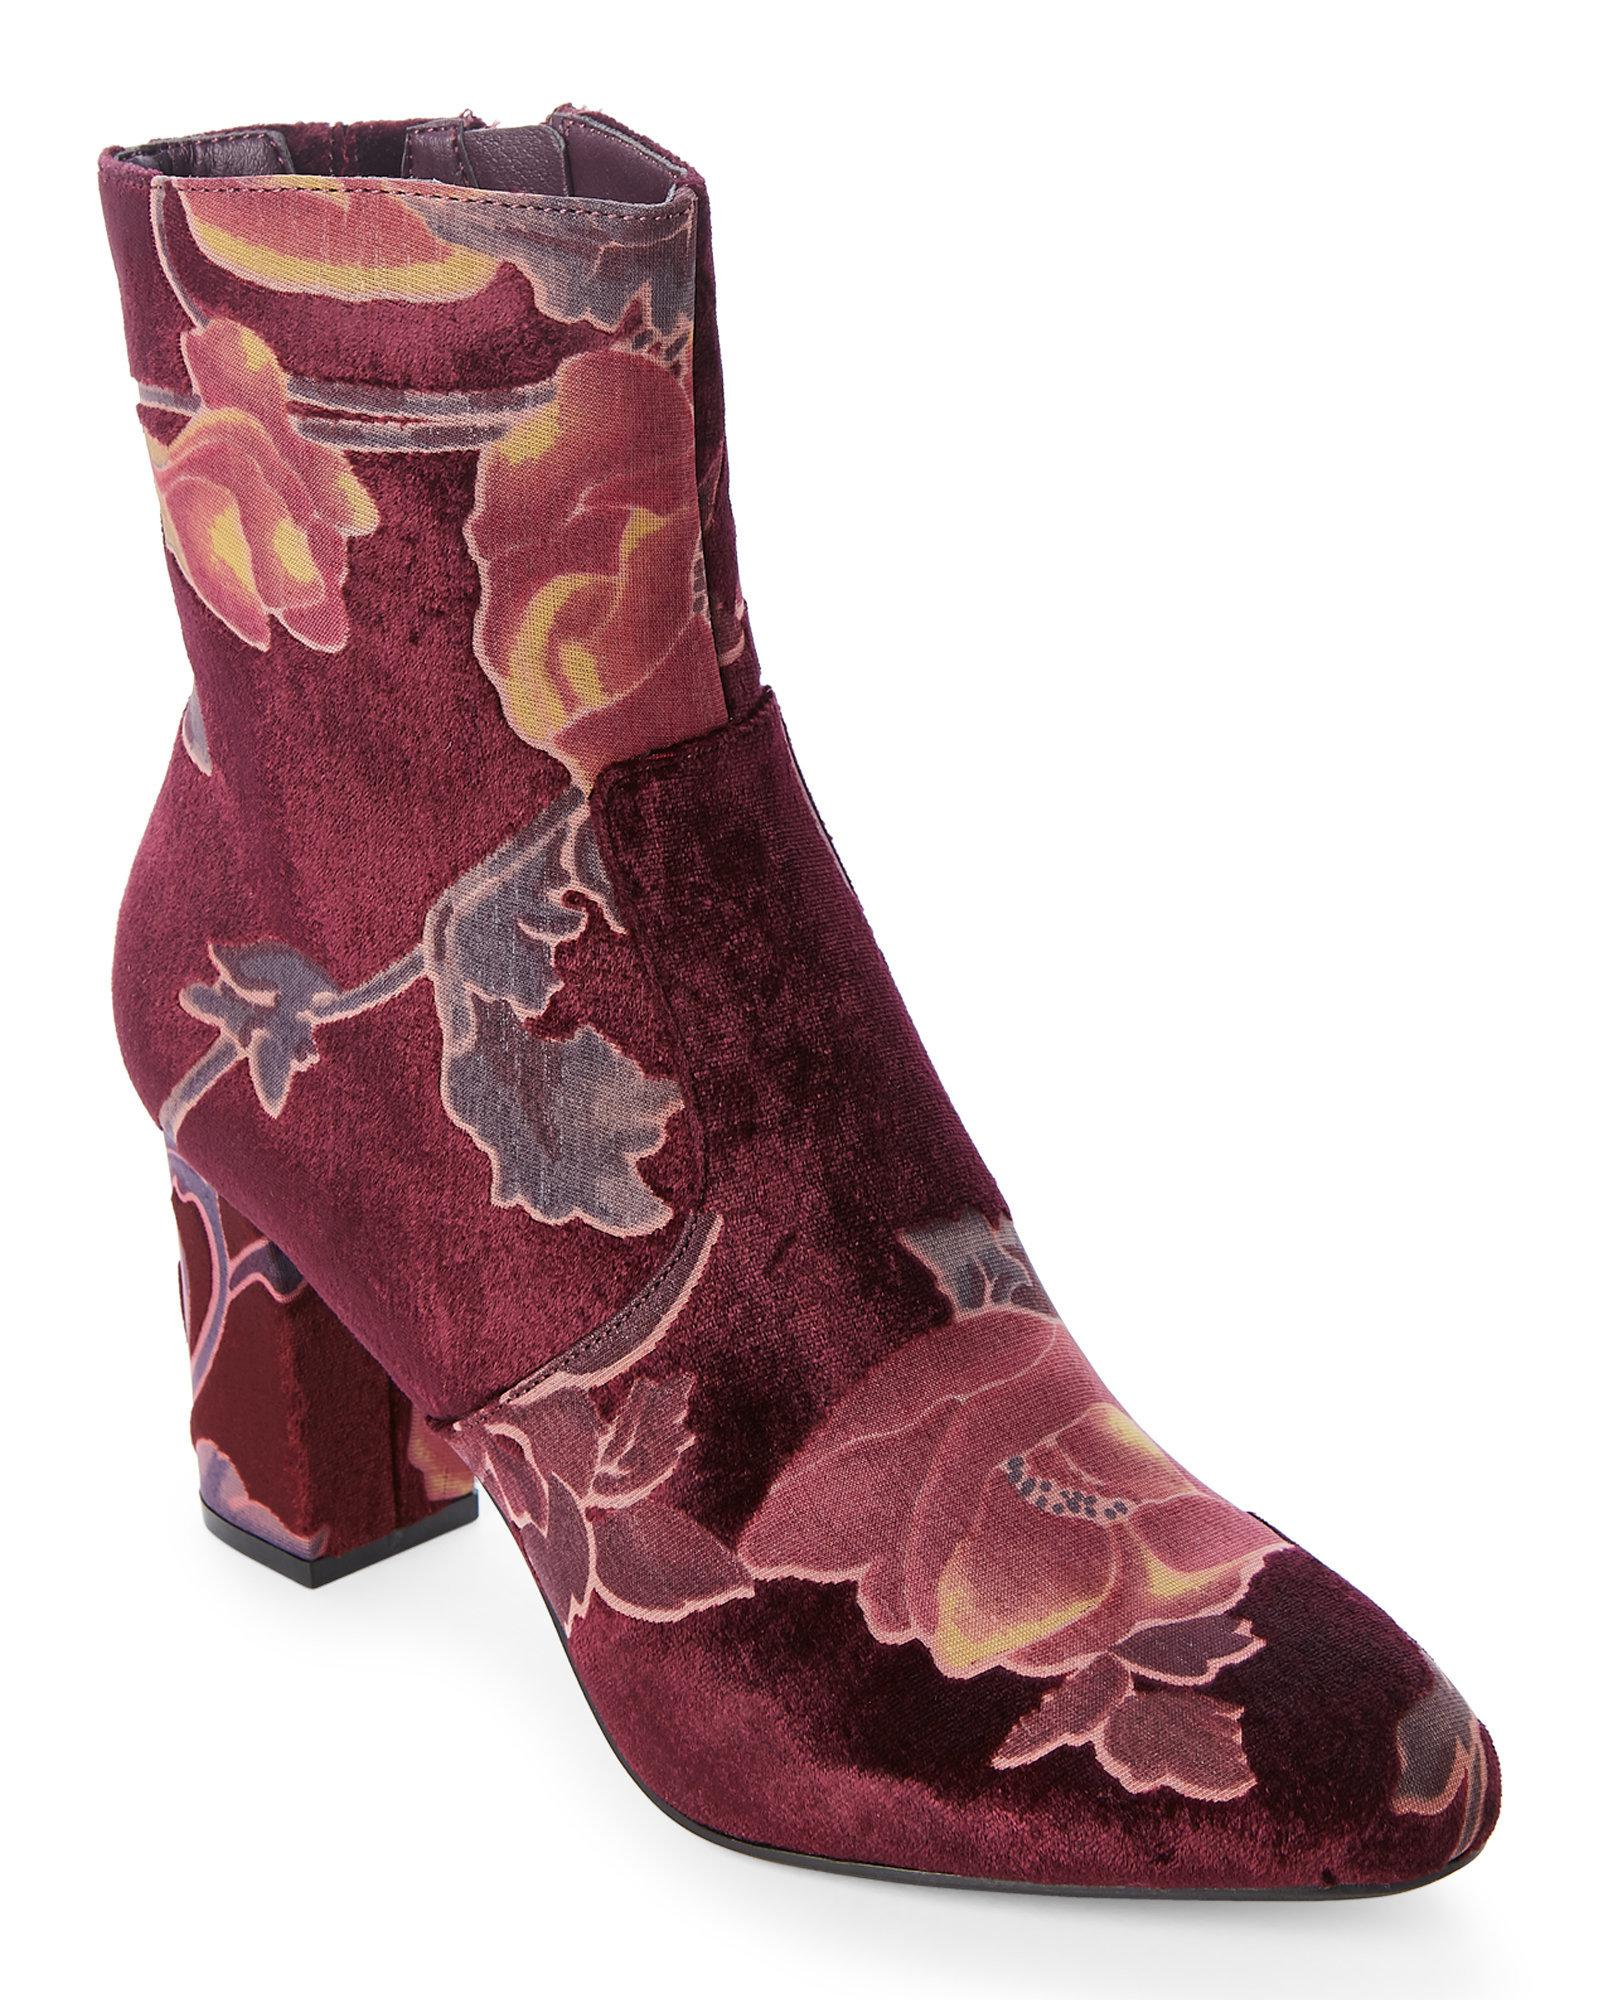 7907f976063 Lyst - Steve Madden Burgundy Elissa Brocade Velvet Booties in Purple